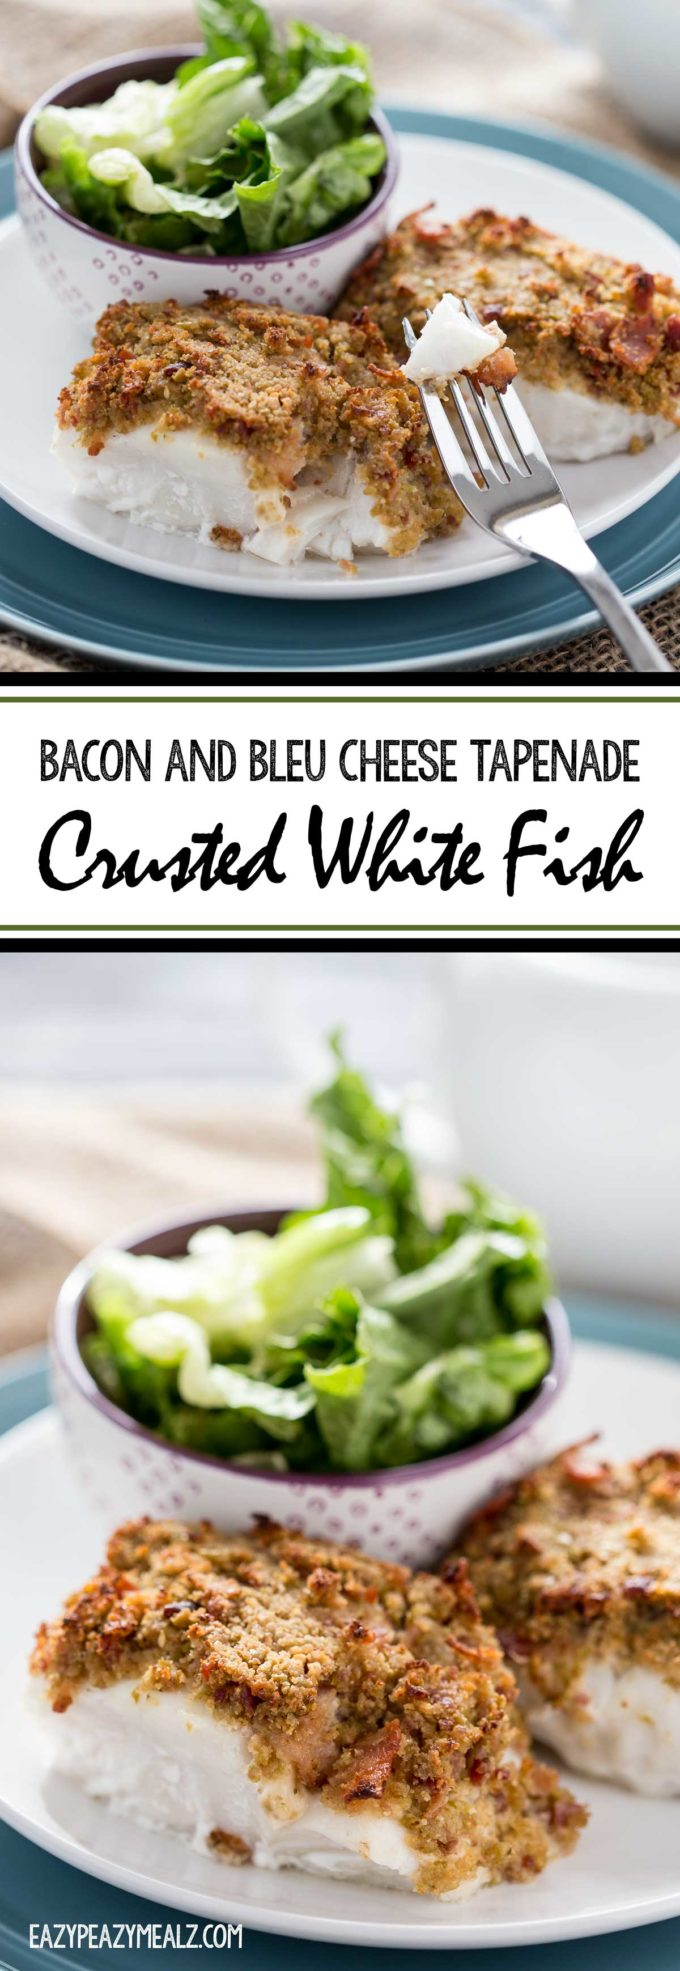 Bacon Bleu Cheese Tapenade Crusted White fish is an easy flavorful meal.